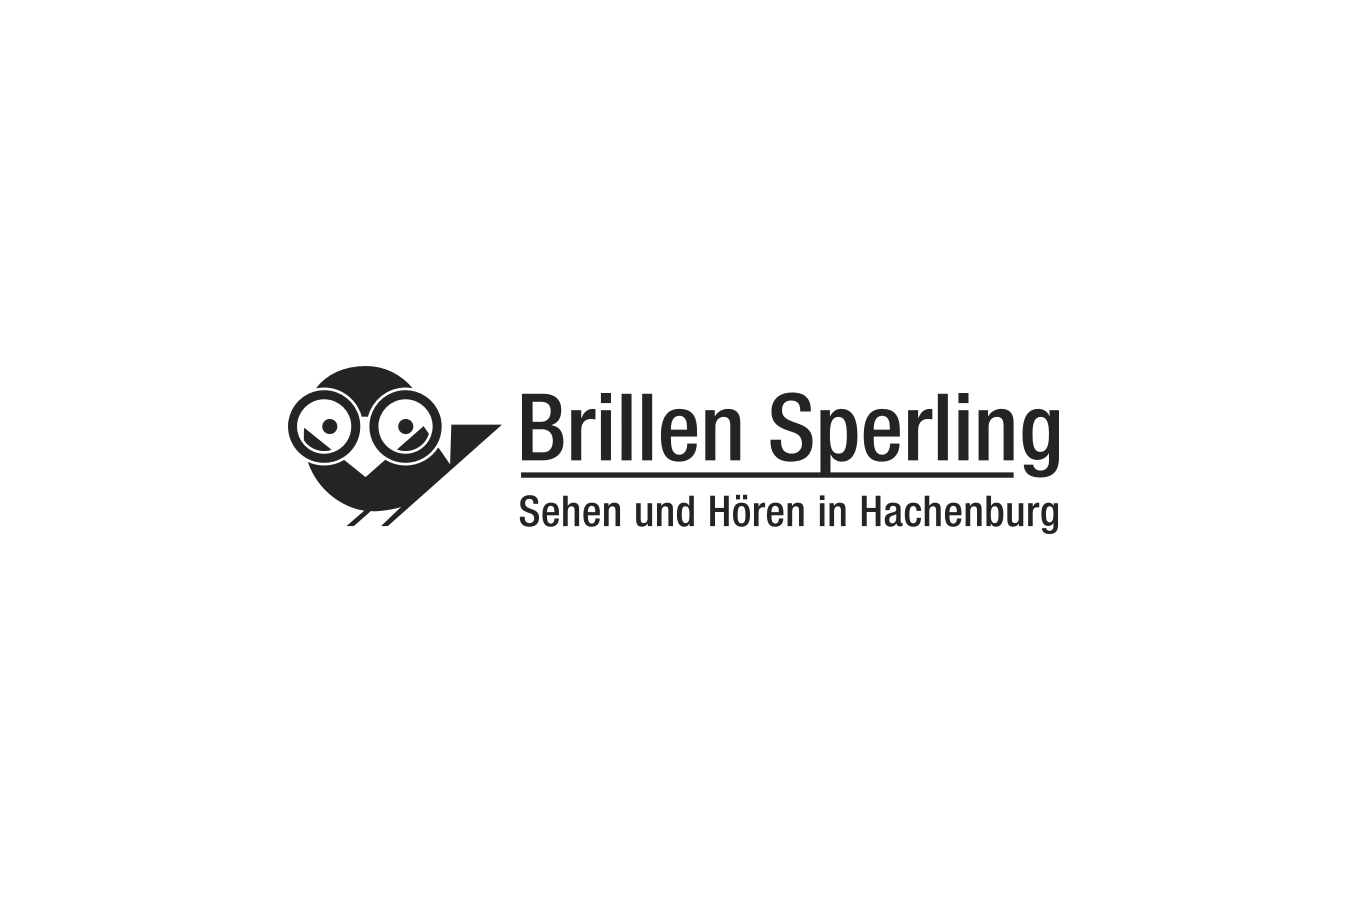 Brillen Sperling